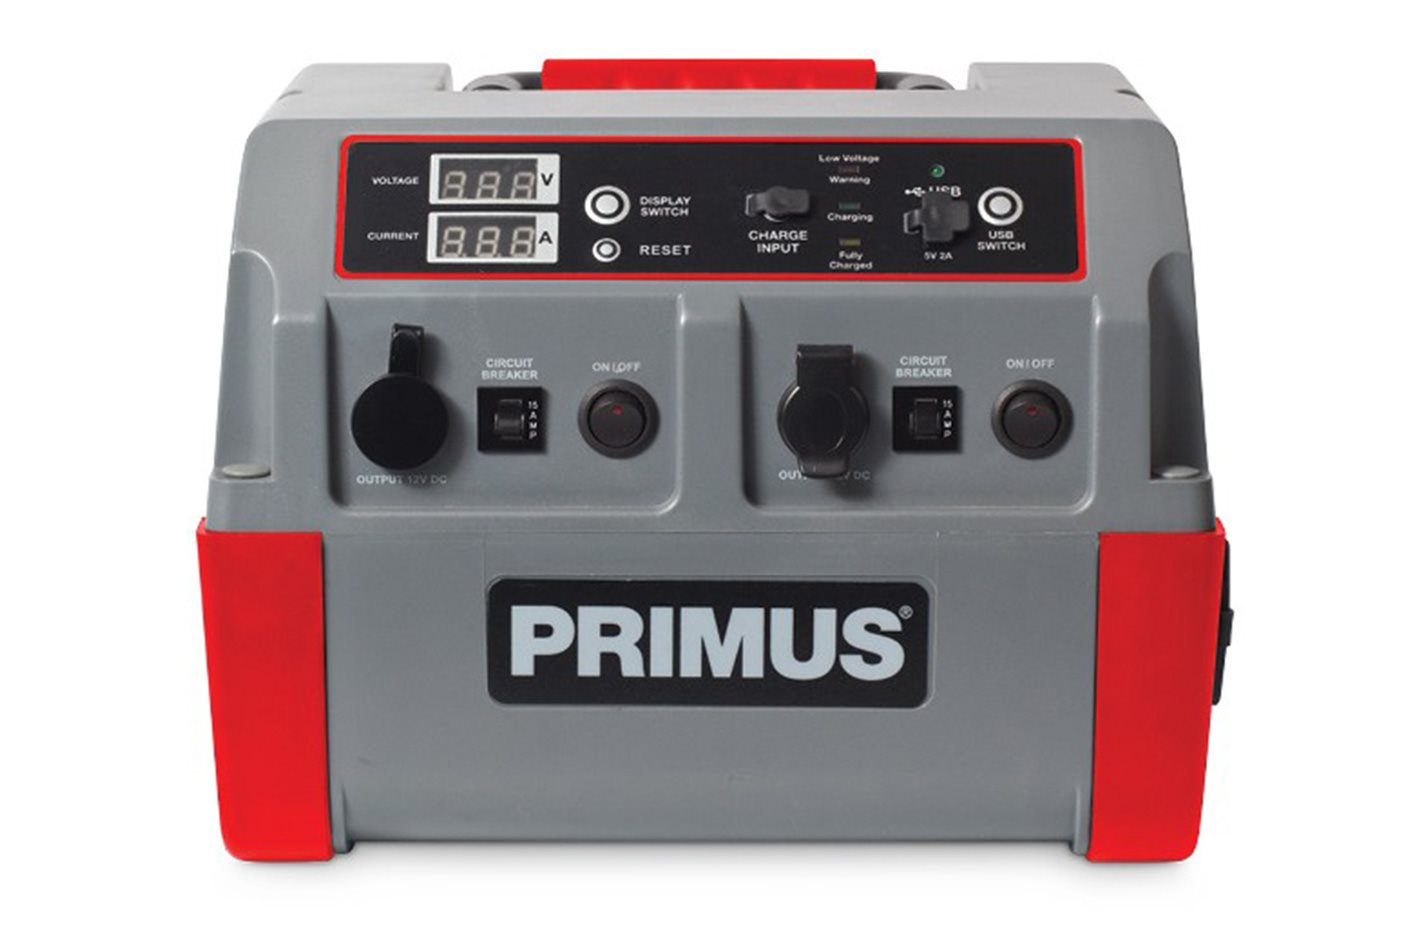 Primus-Portable-Power-Pack-44Ah-front.jpg